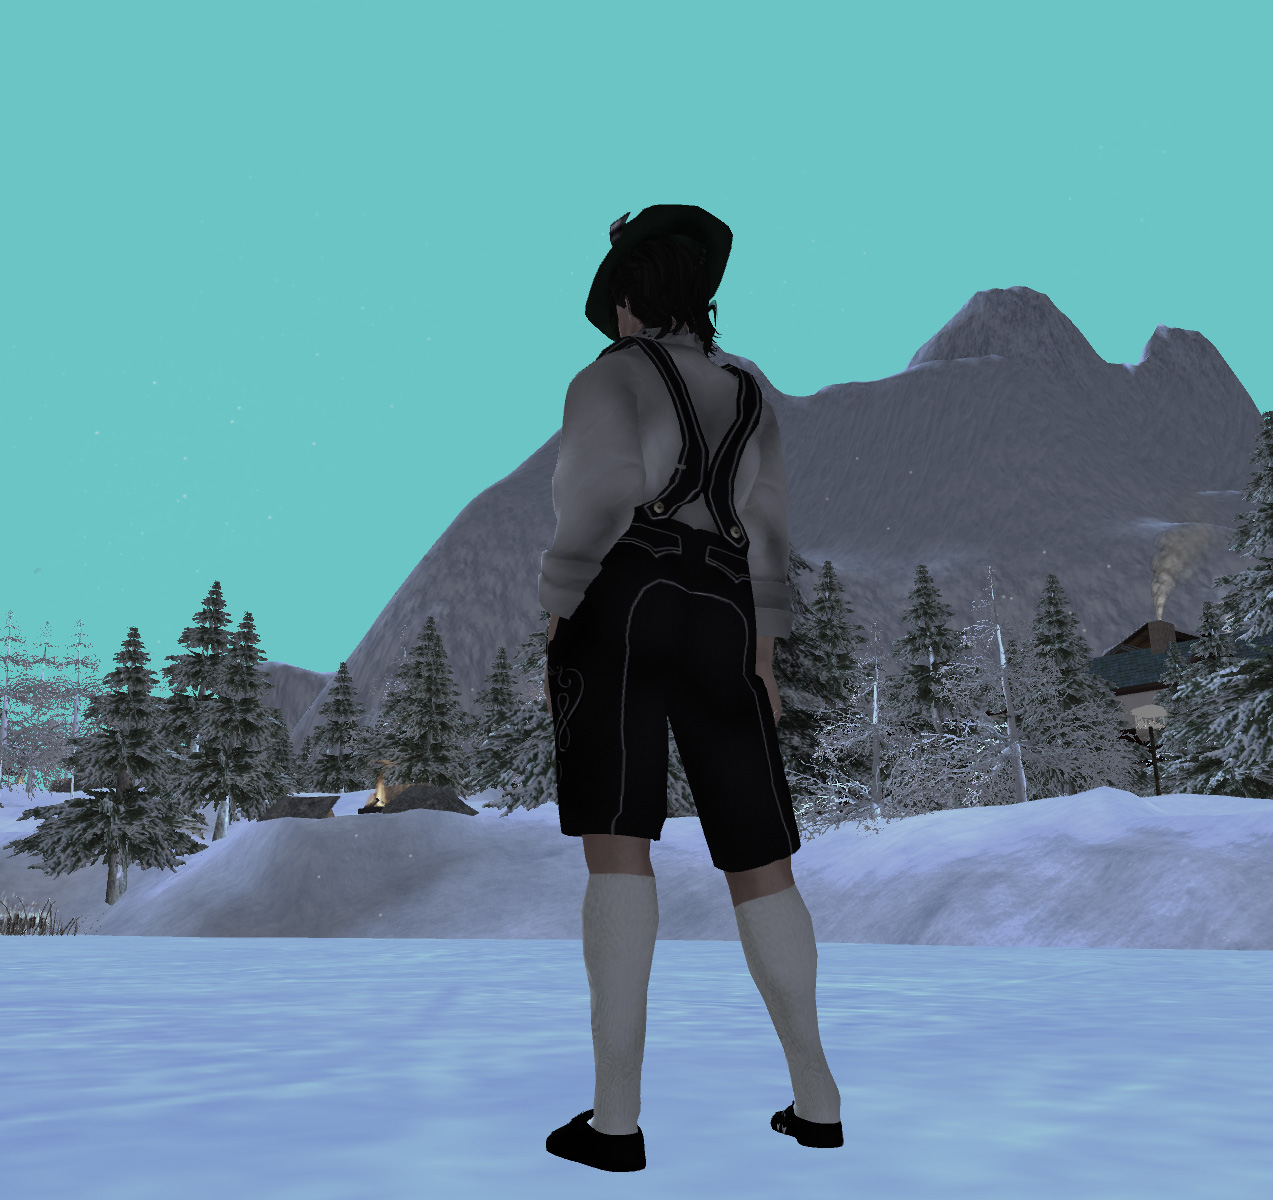 AVatar-Bizarre-Lederhosen-in-the-Snow-II